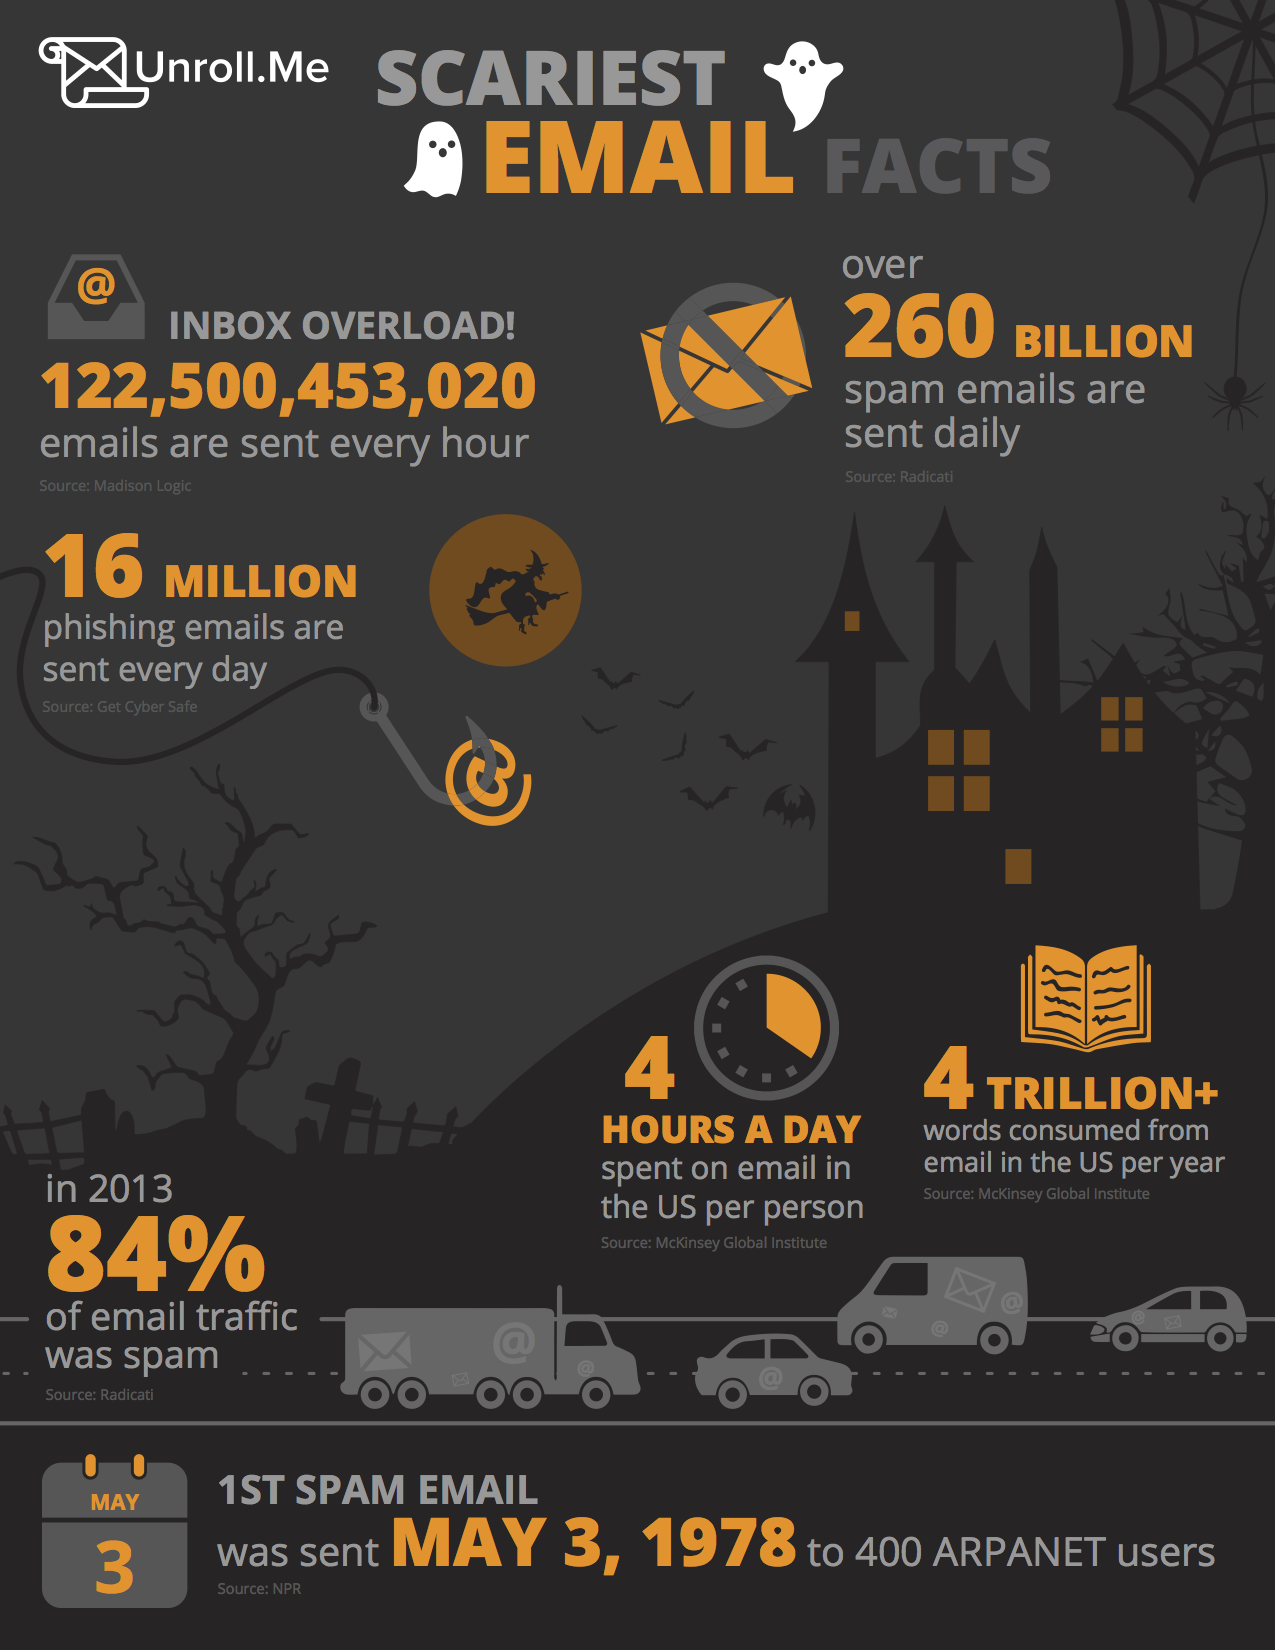 unrollme_scariestemailfacts_infographic_PRESS